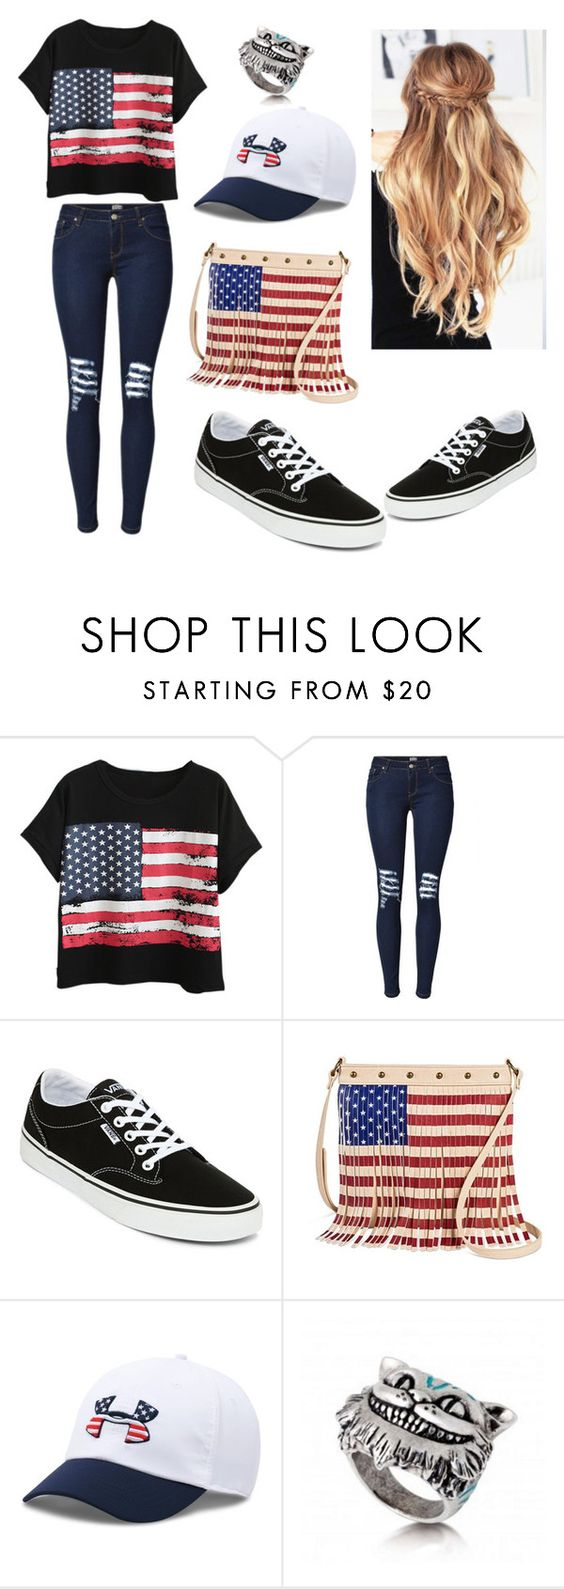 """Untitled #138"" by courtneybells ❤ liked on Polyvore featuring beauty, Chicnova Fashion, Vans, Twig & Arrow and Under Armour"